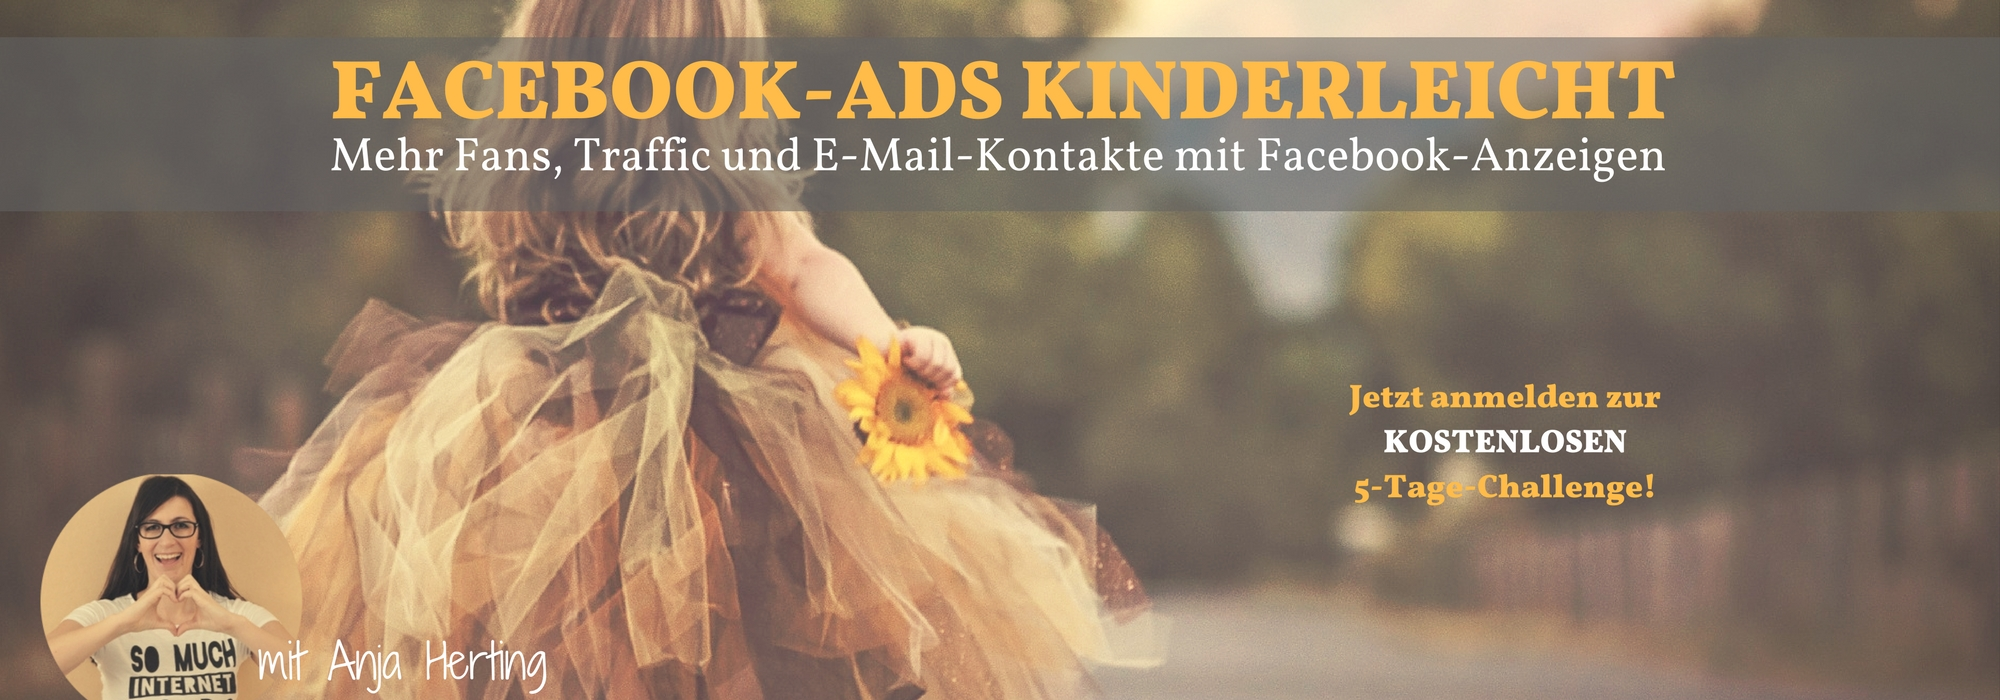 Facebook-Ads-kinderleicht